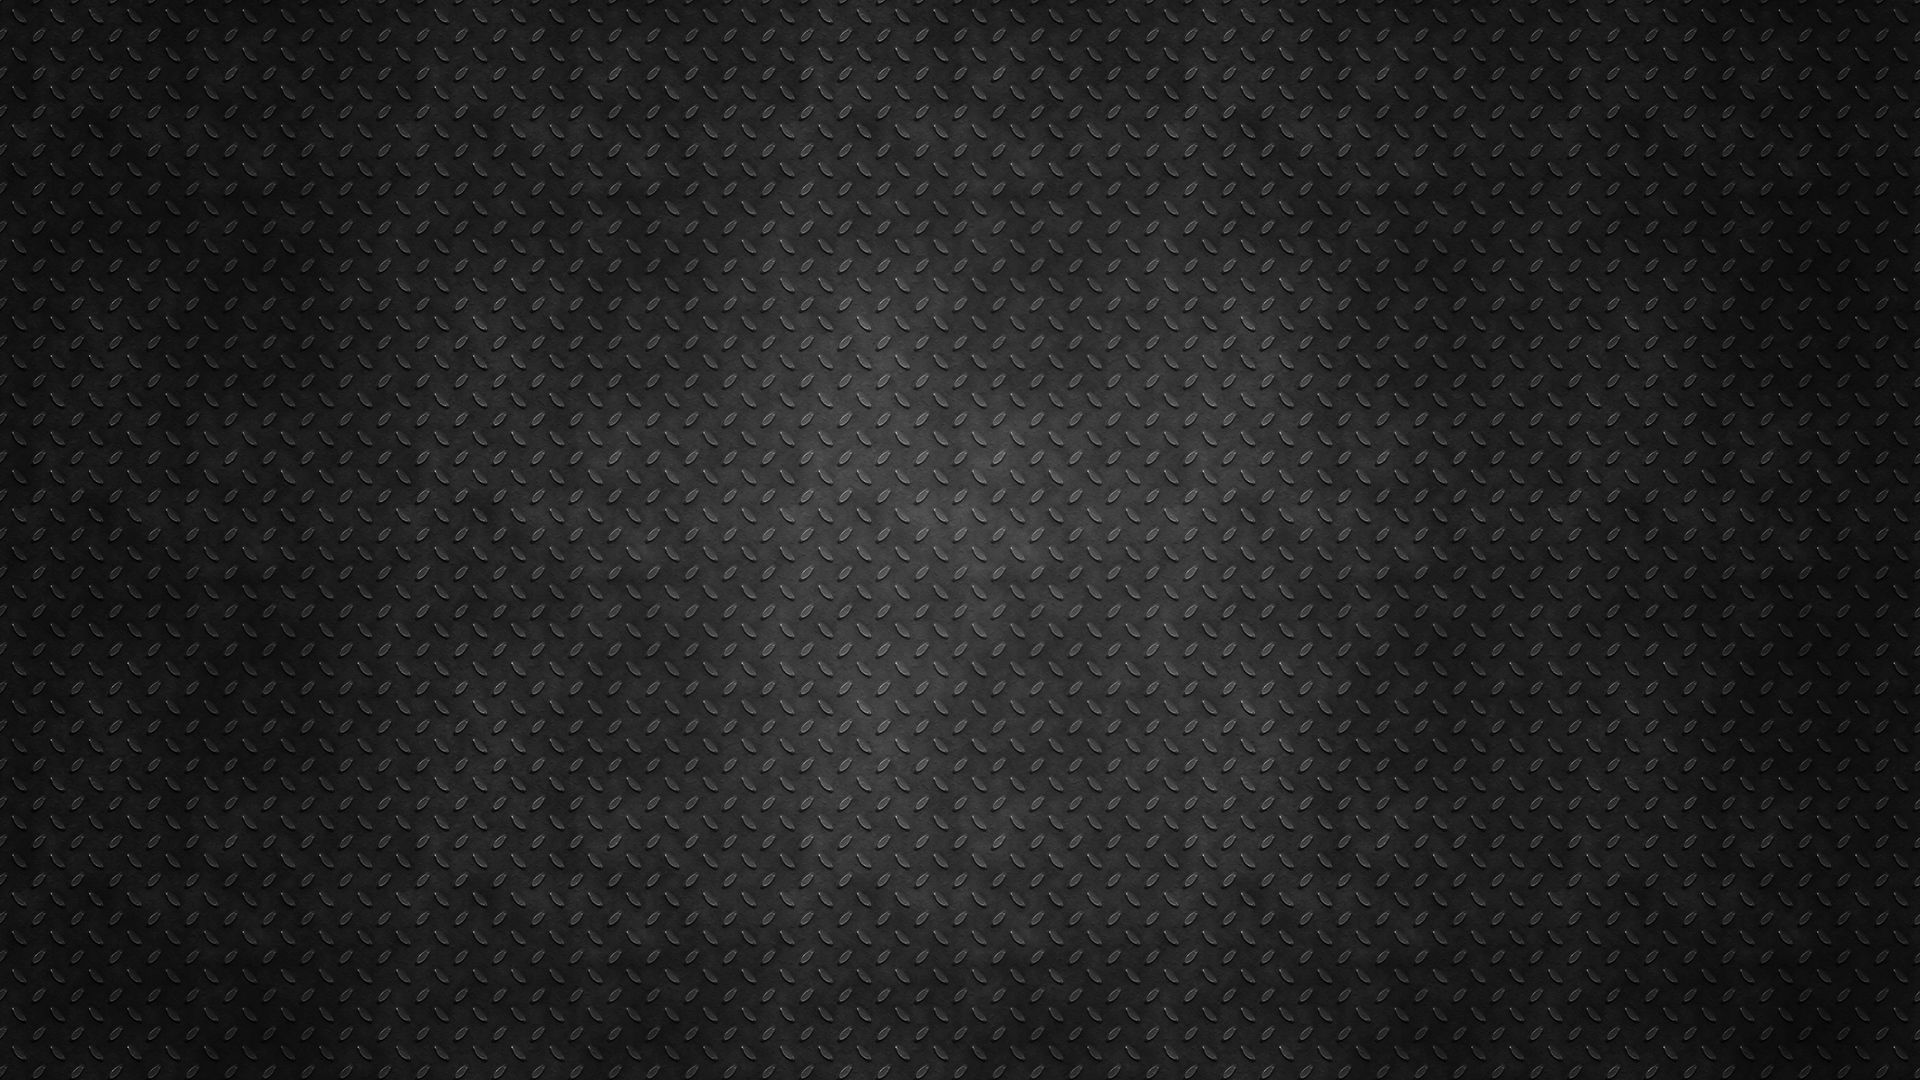 Black Background Metal Texture 19201080 Abstract Hd Planos De